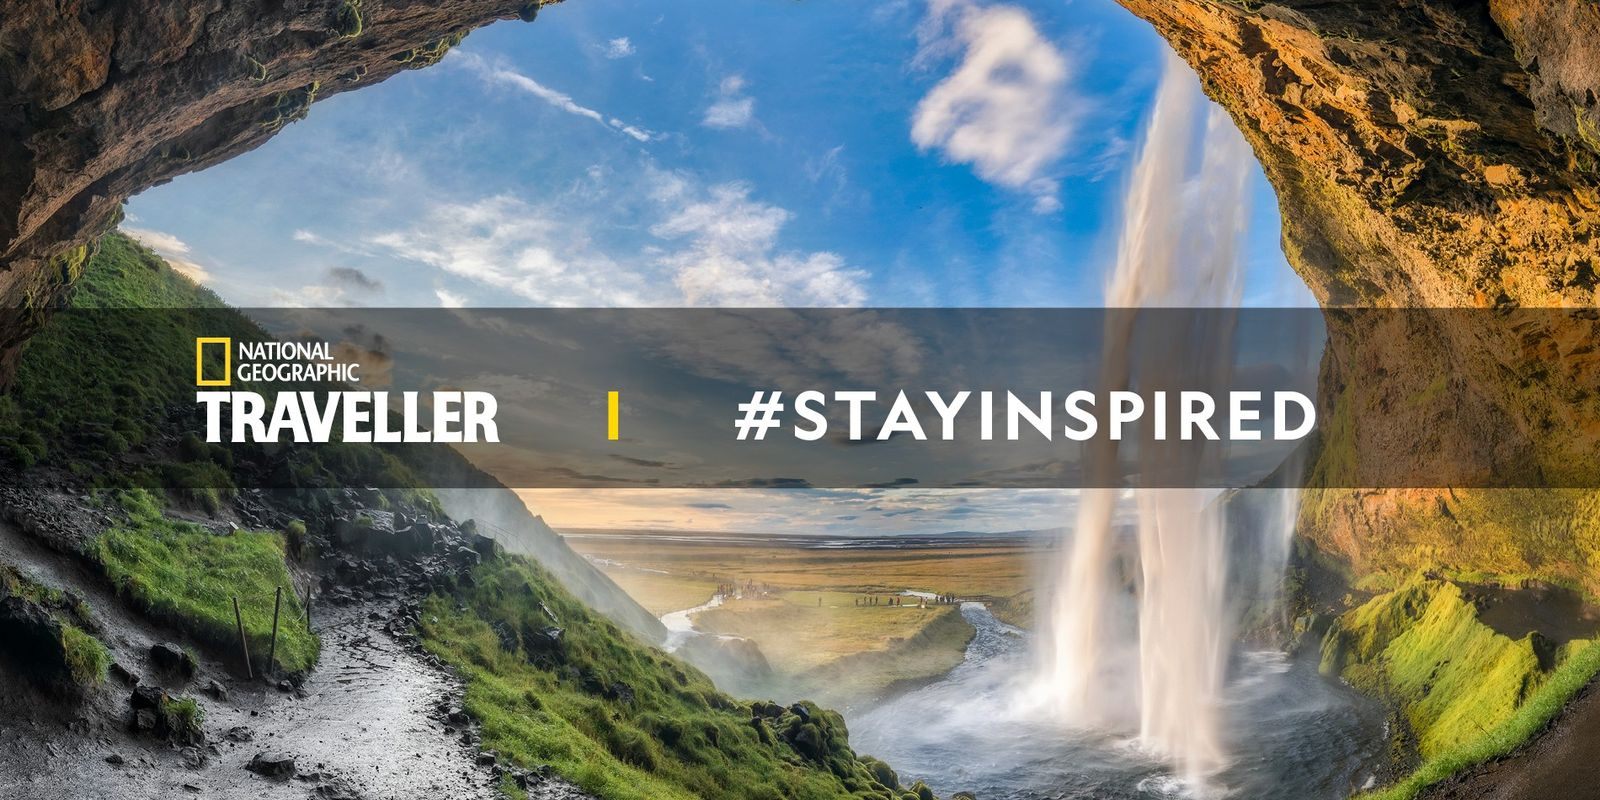 Stay inspired with National Geographic Traveller